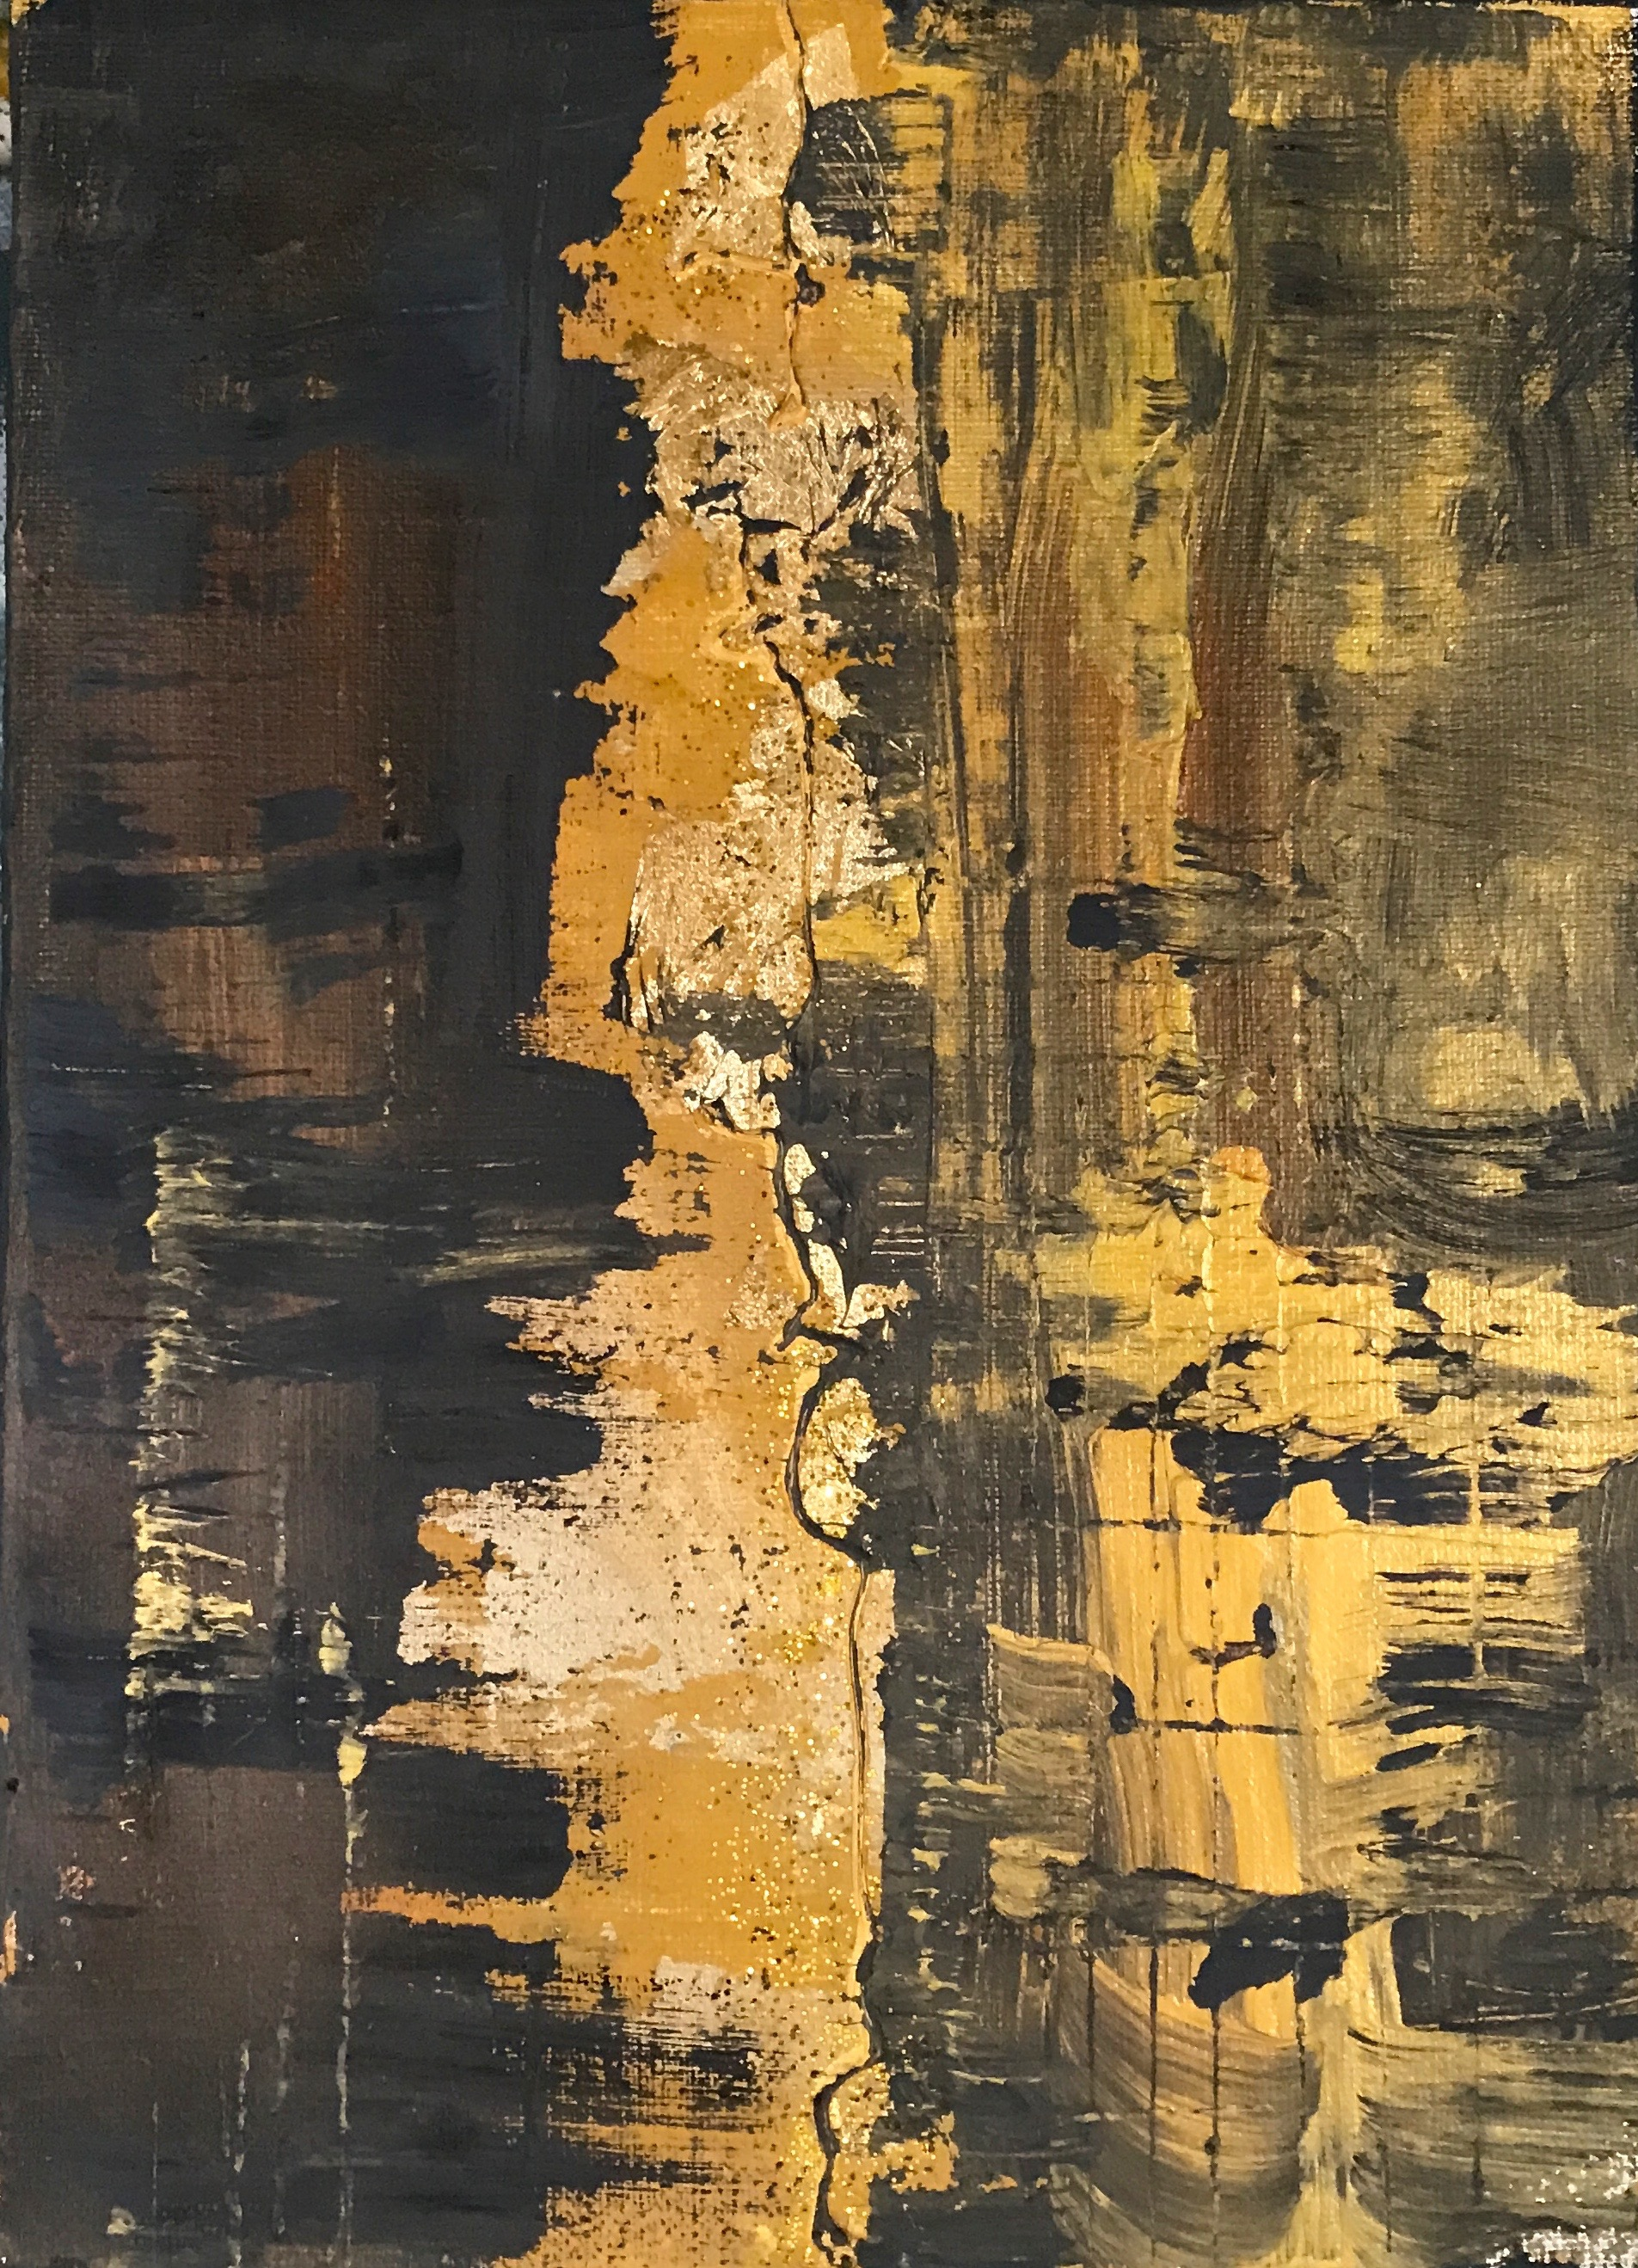 Golden drama, sold